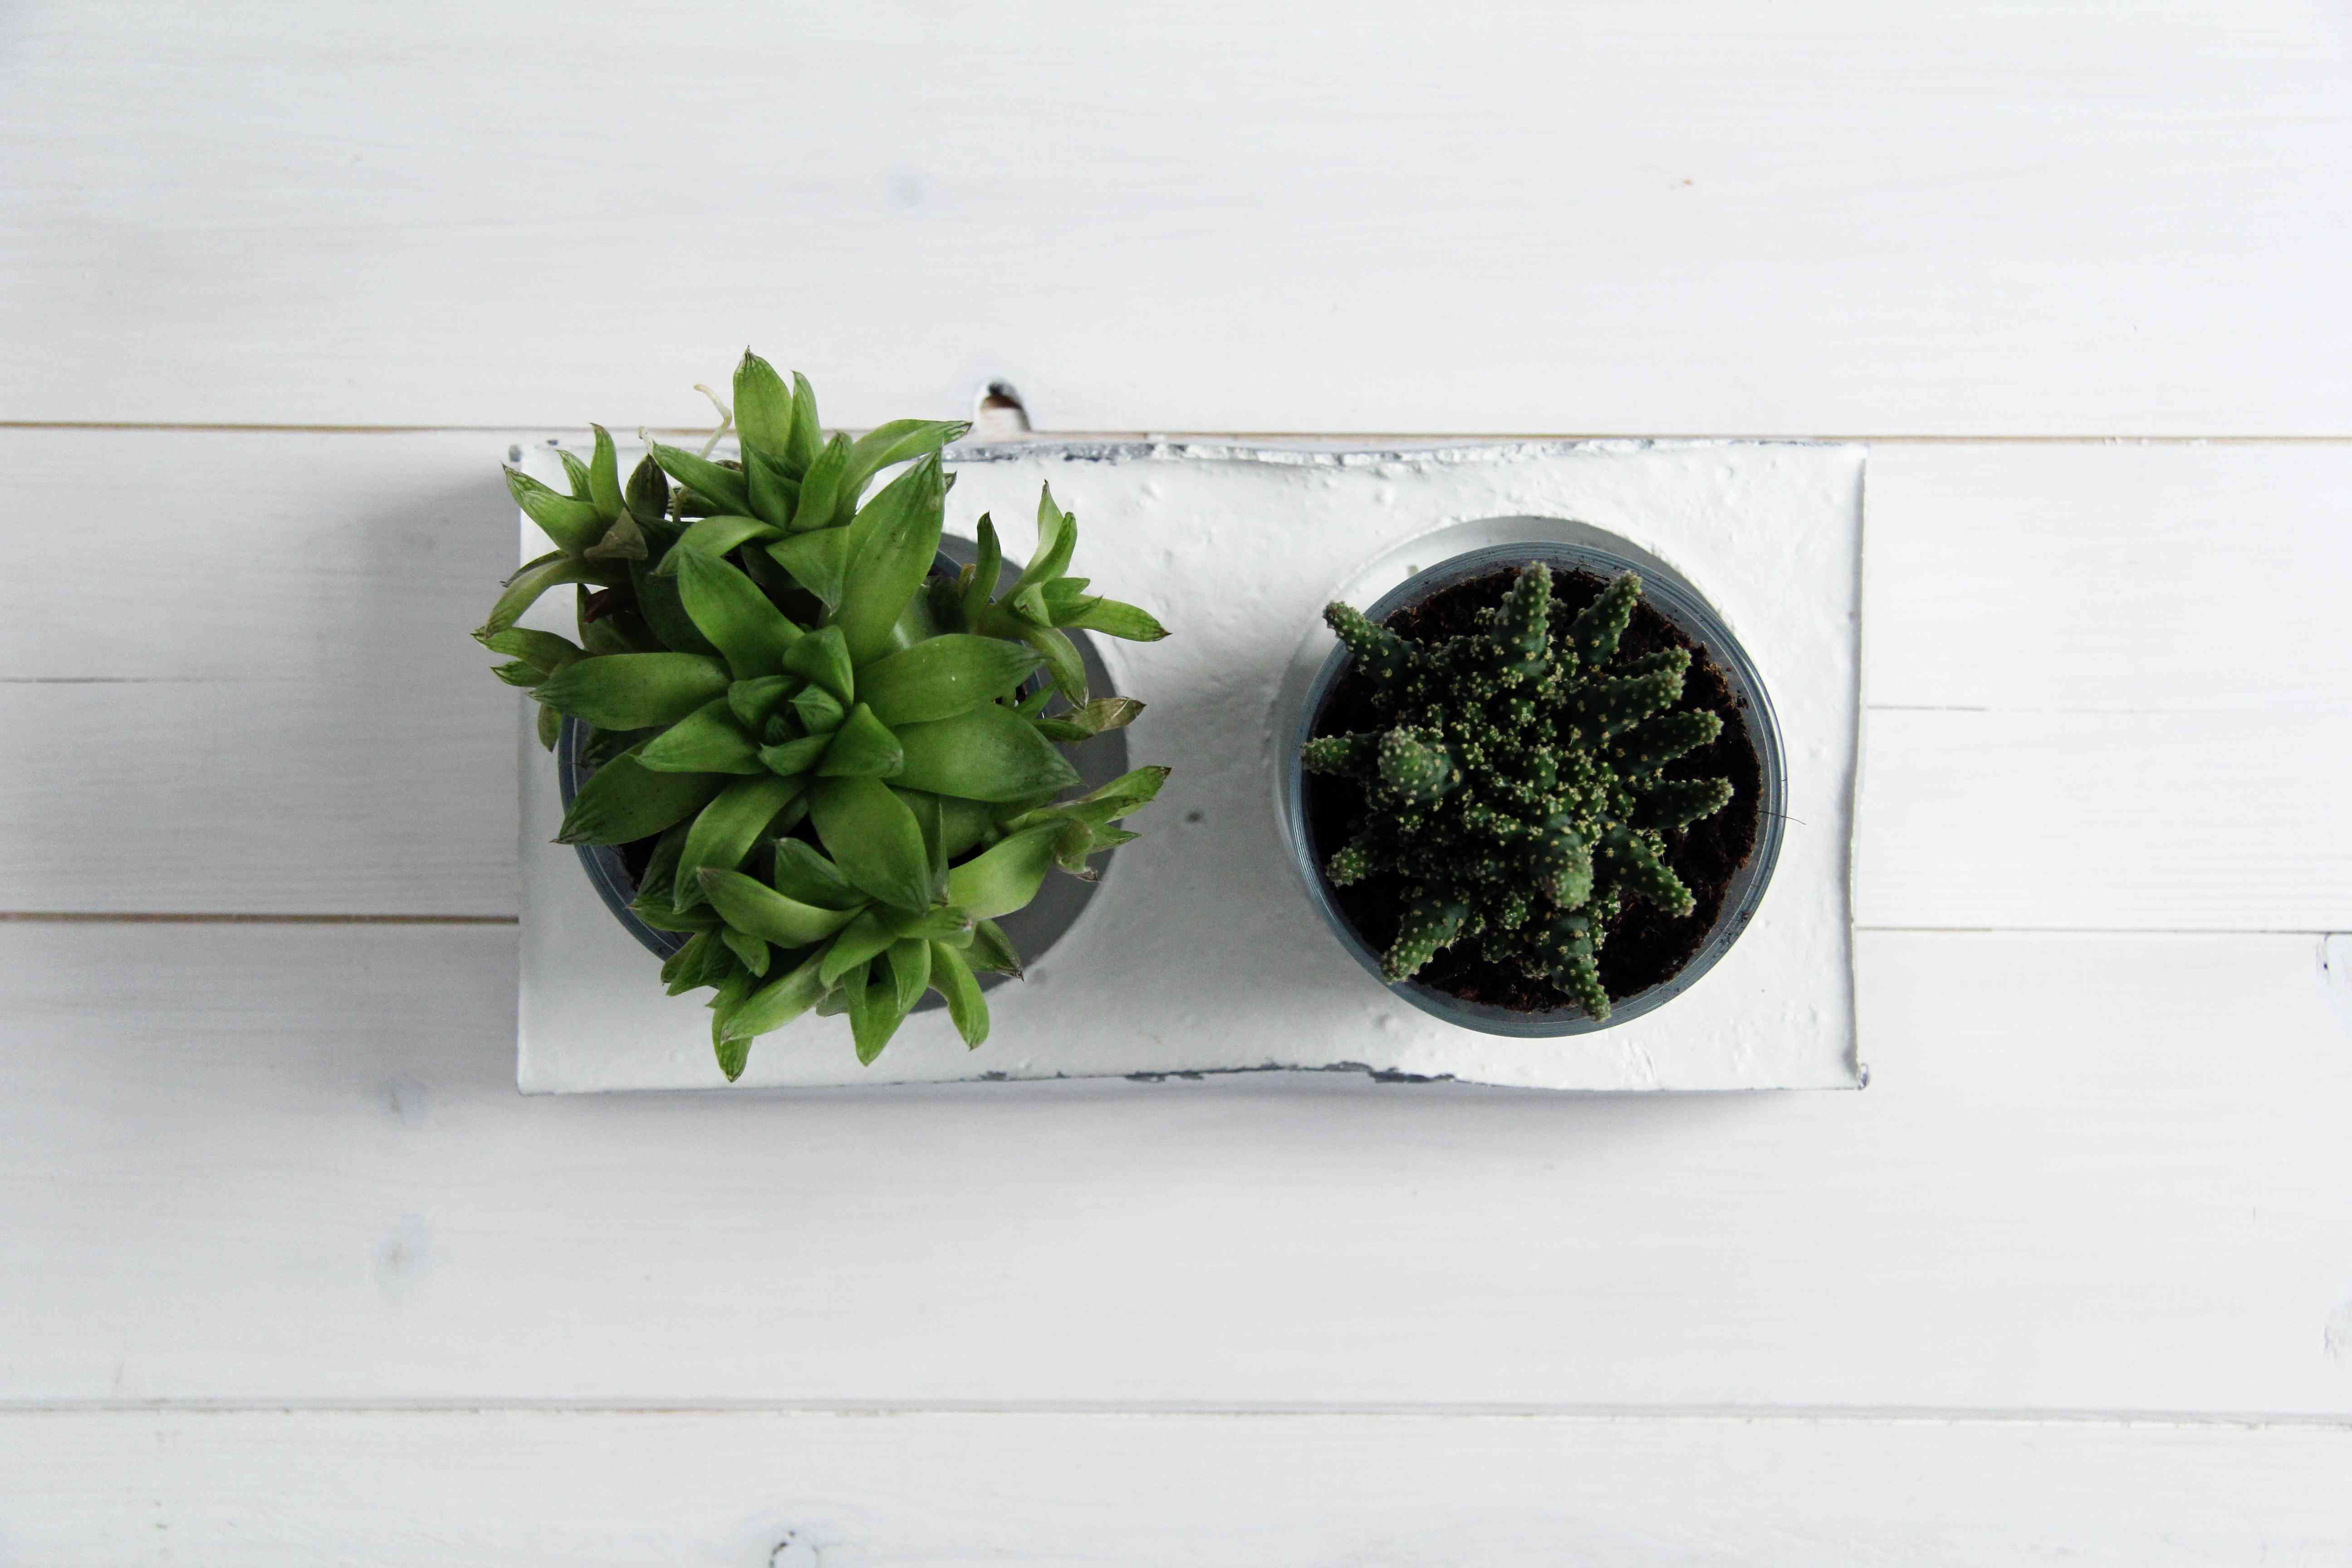 An overhead view of a concrete planter with two plants